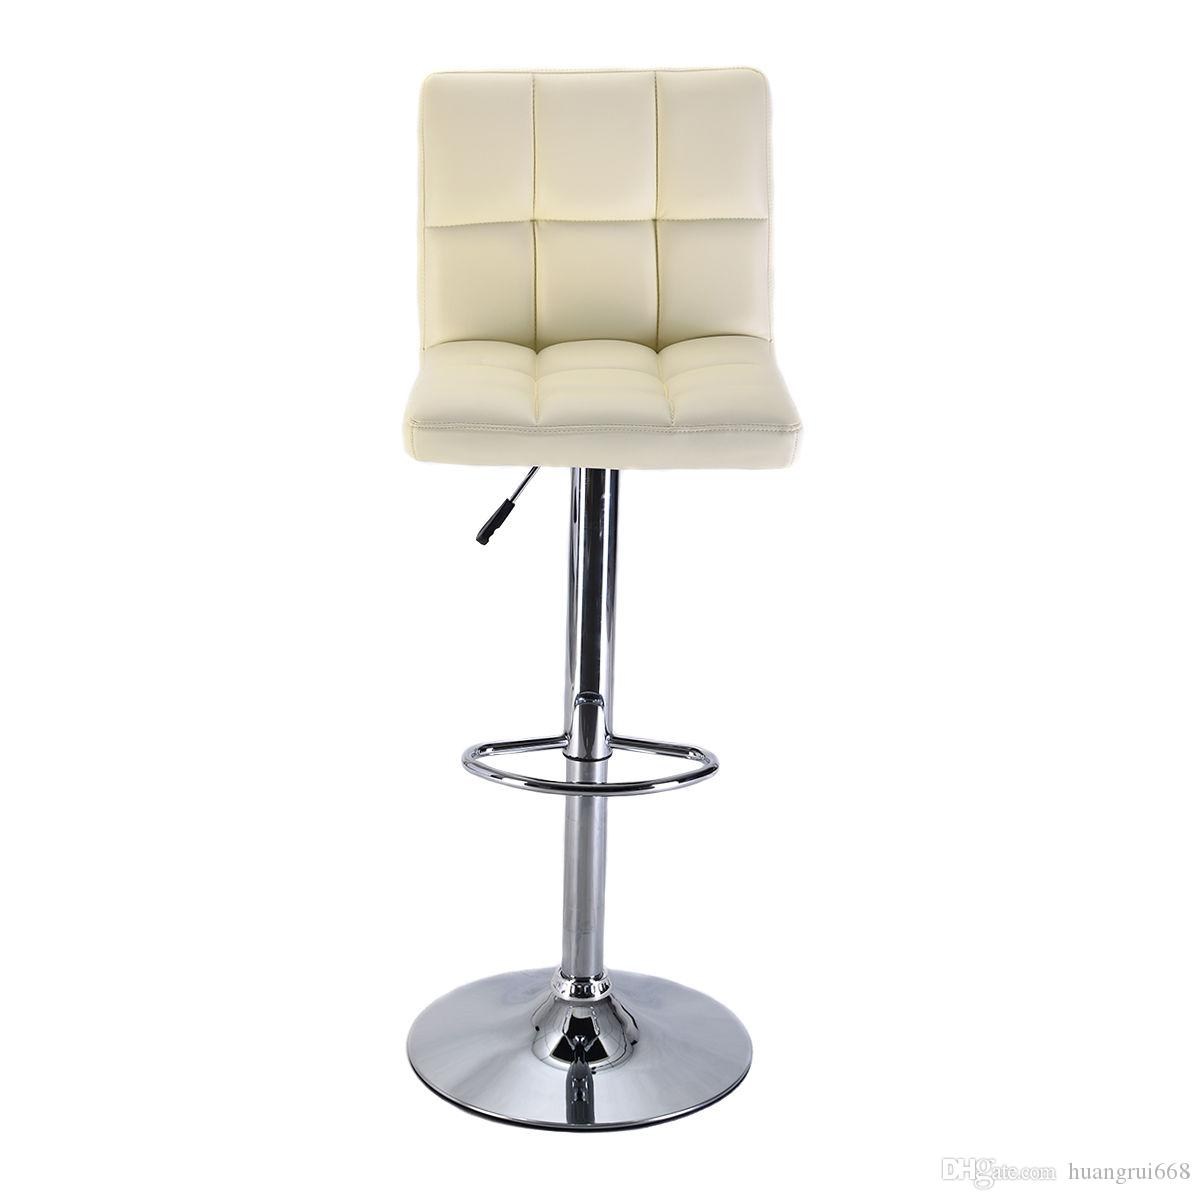 Superbe Online Cheap Bar Stool Pu Leather Barstools Chair Adjustable Counter Swivel  Pub By Huangrui668 | Dhgate.Com